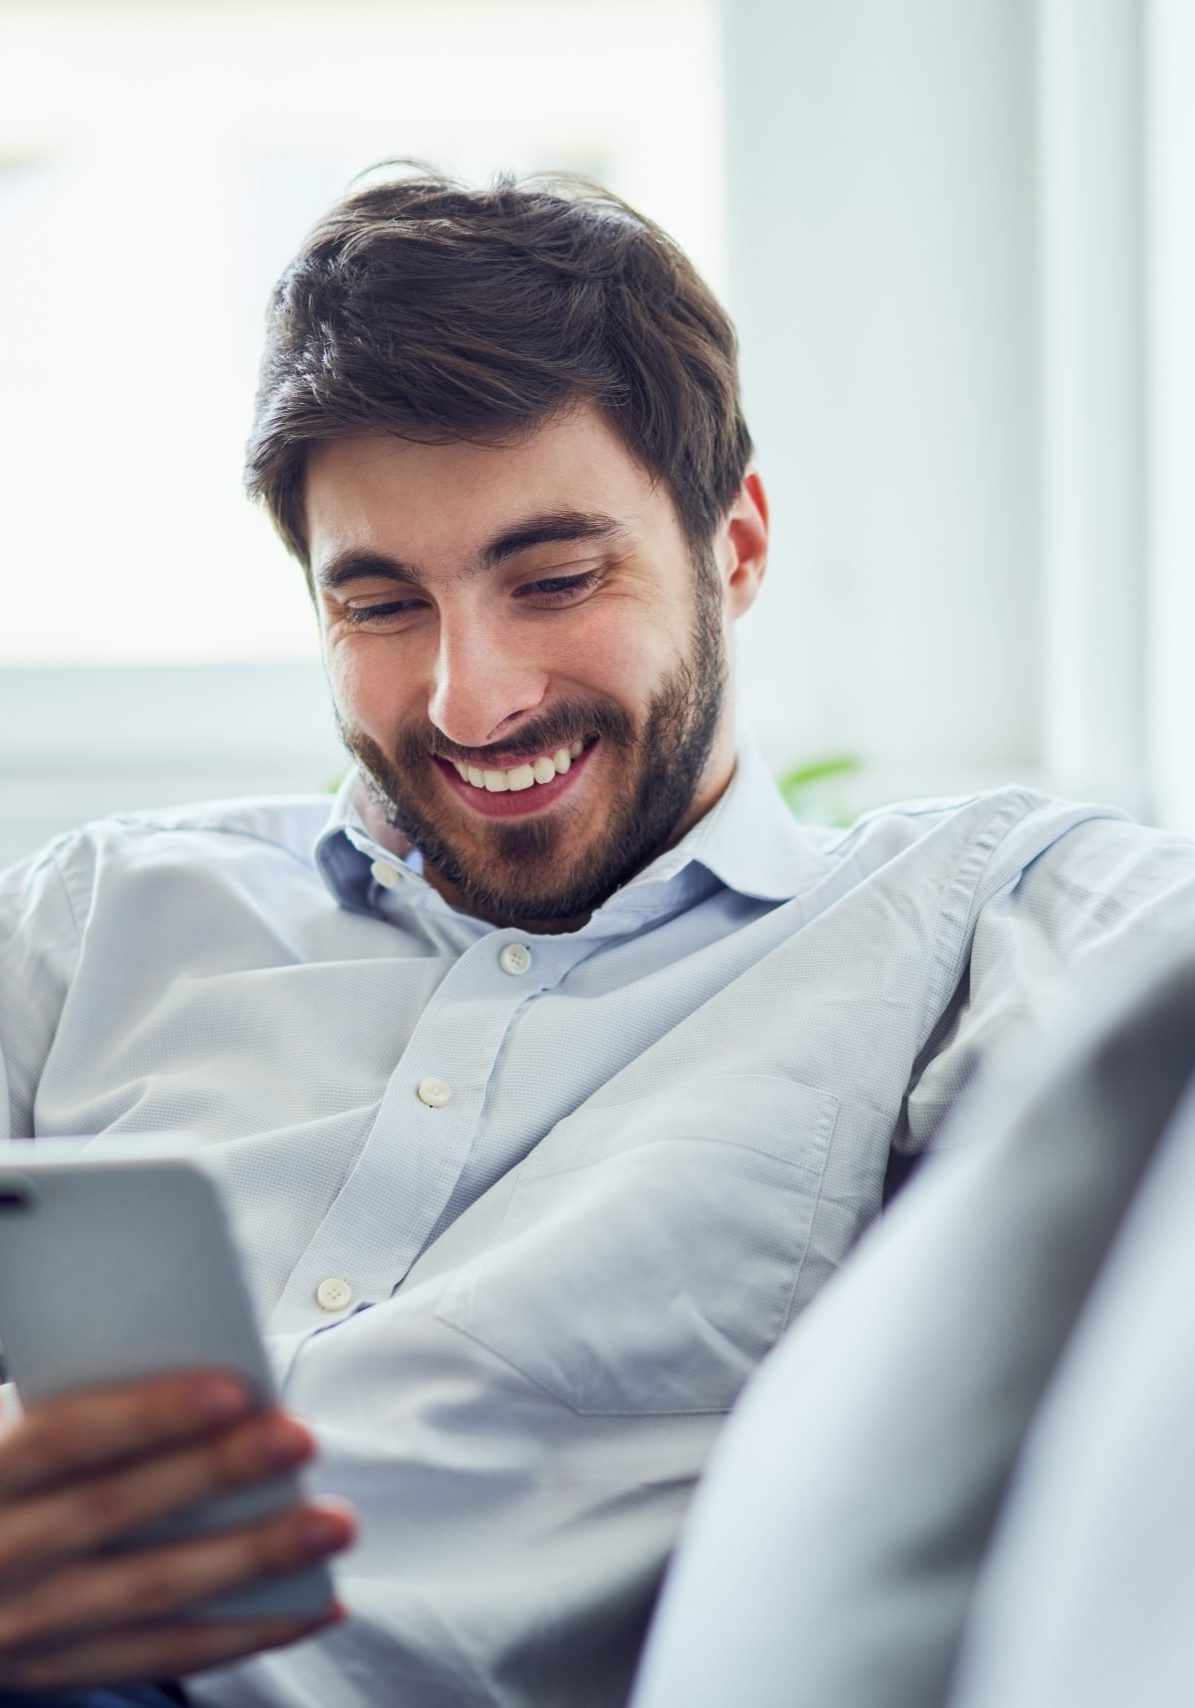 Cheerful young man using phone while relaxing on sofa after work